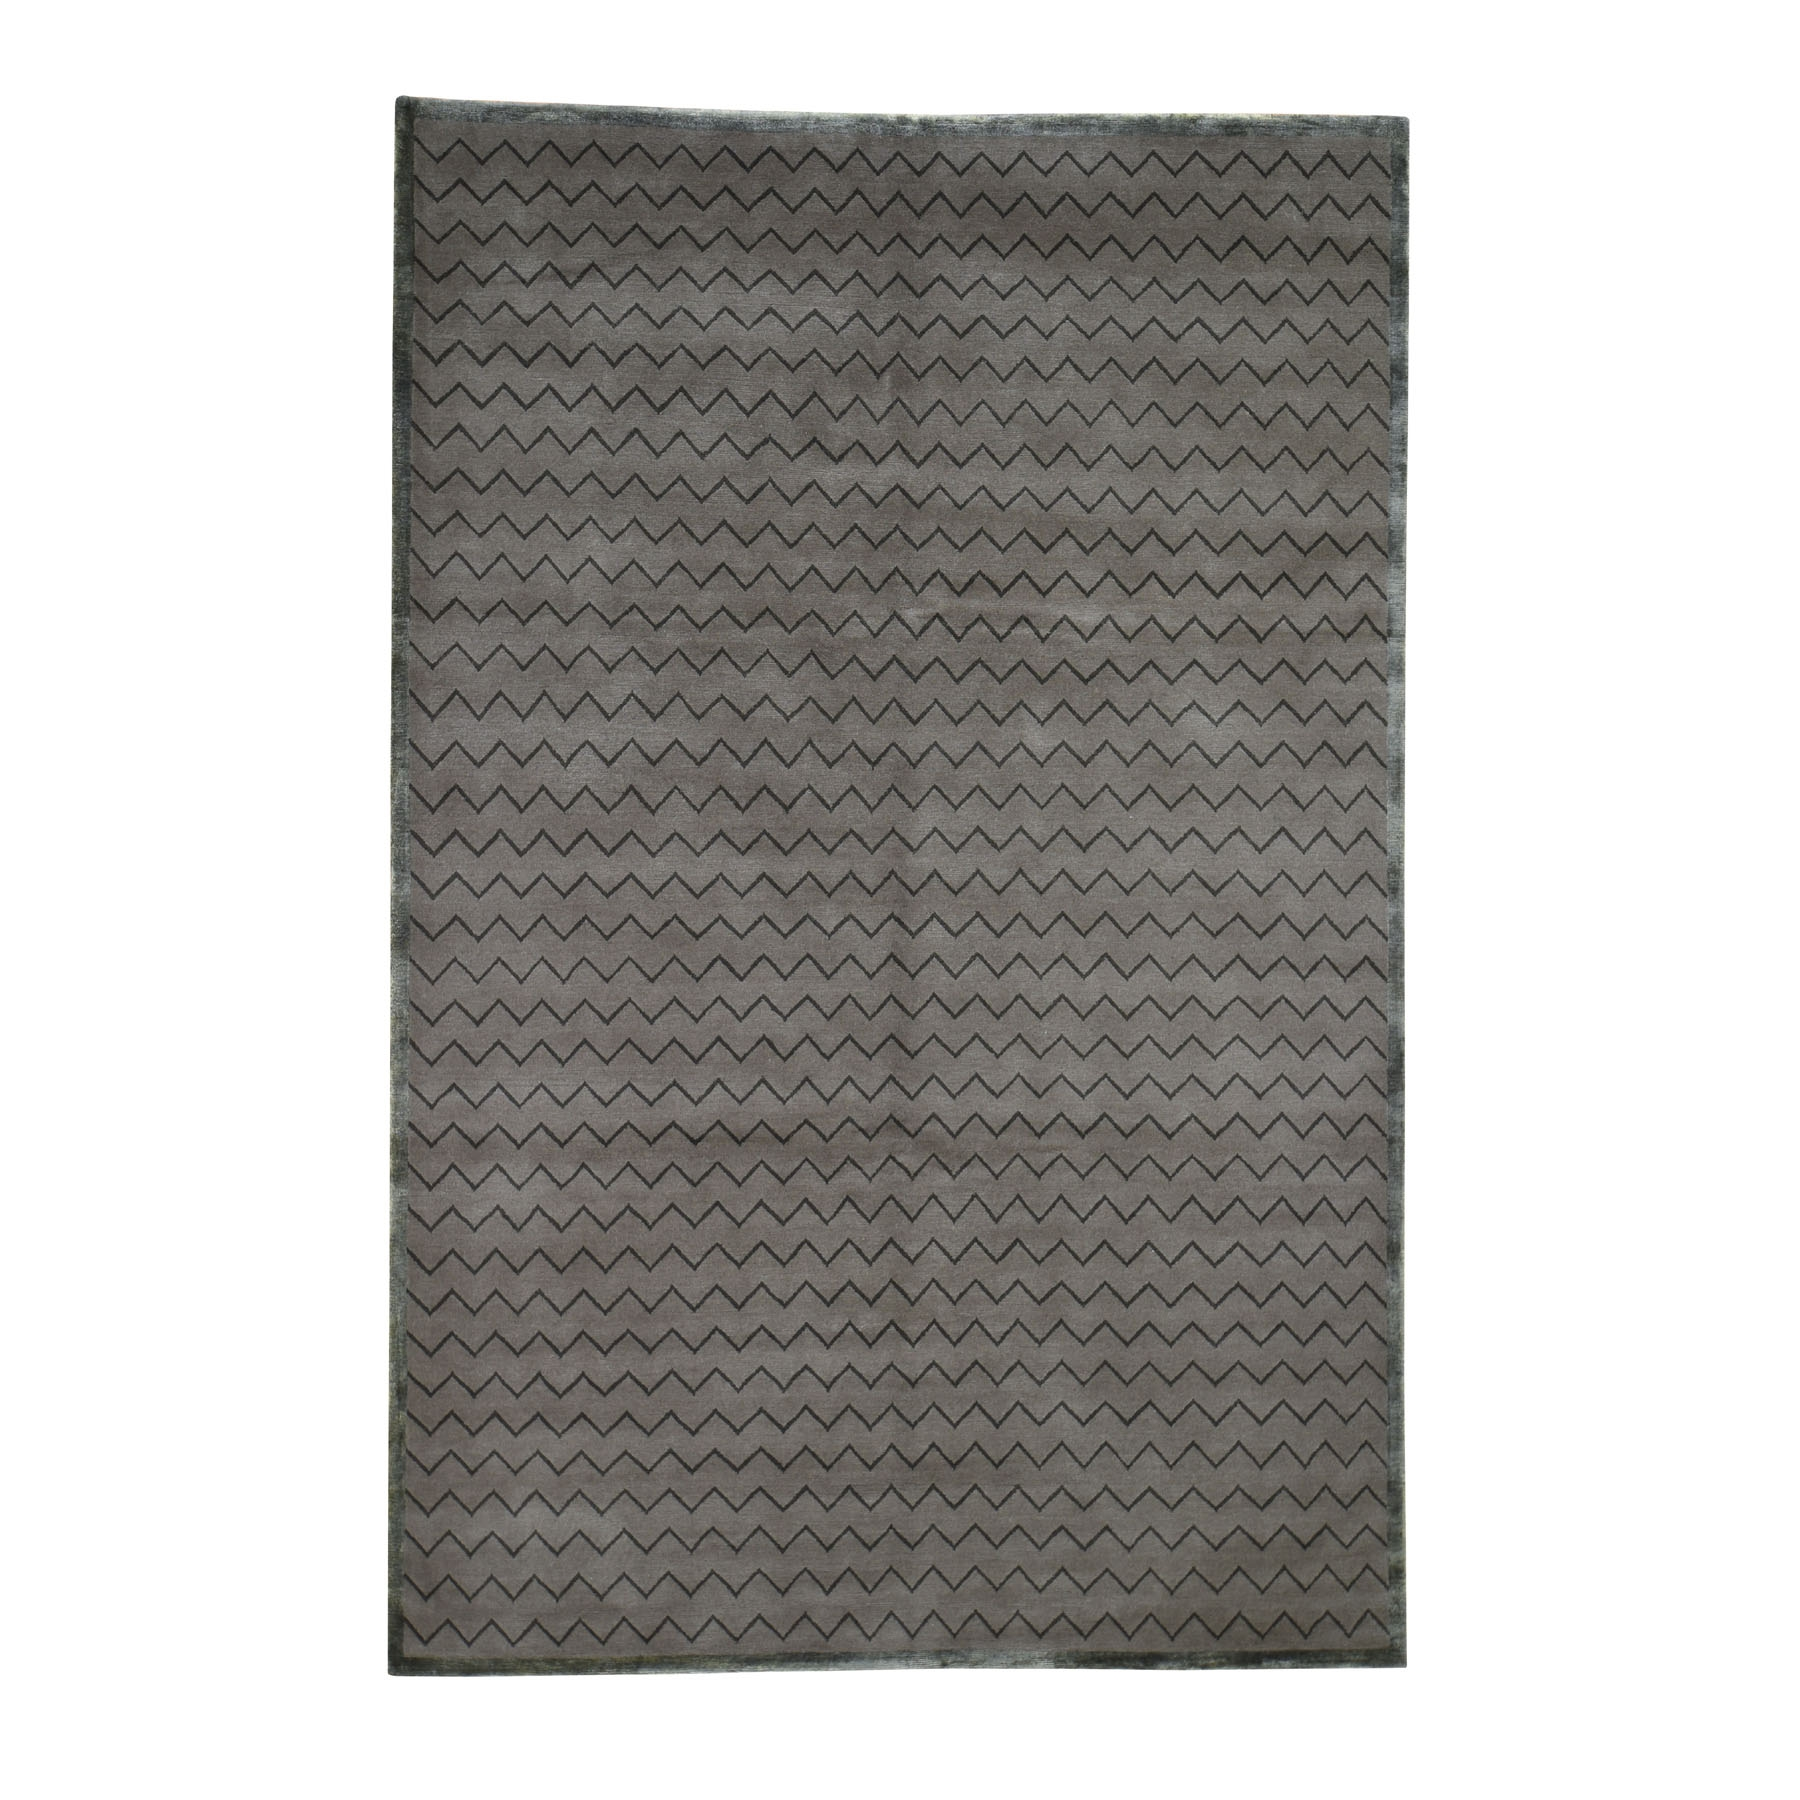 Deep discounted Collection Hand Knotted Brown Rug No: 194886